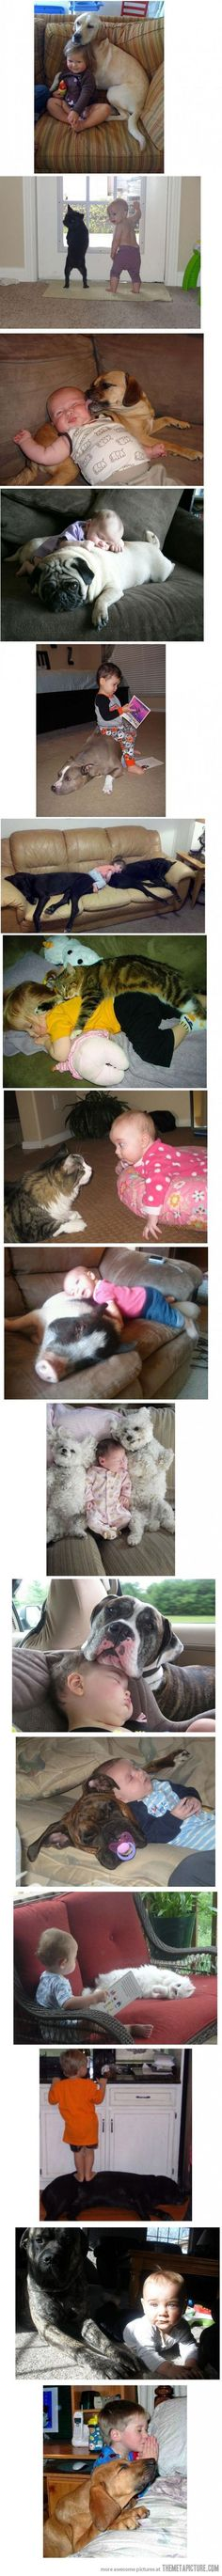 pets and their humans.so cute! I hope I have cute babies and cuddly animals for them one day! Love My Dog, Puppy Love, Animals For Kids, Baby Animals, Funny Animals, Cute Animals, Animal Pictures, Cute Pictures, Chien Golden Retriever